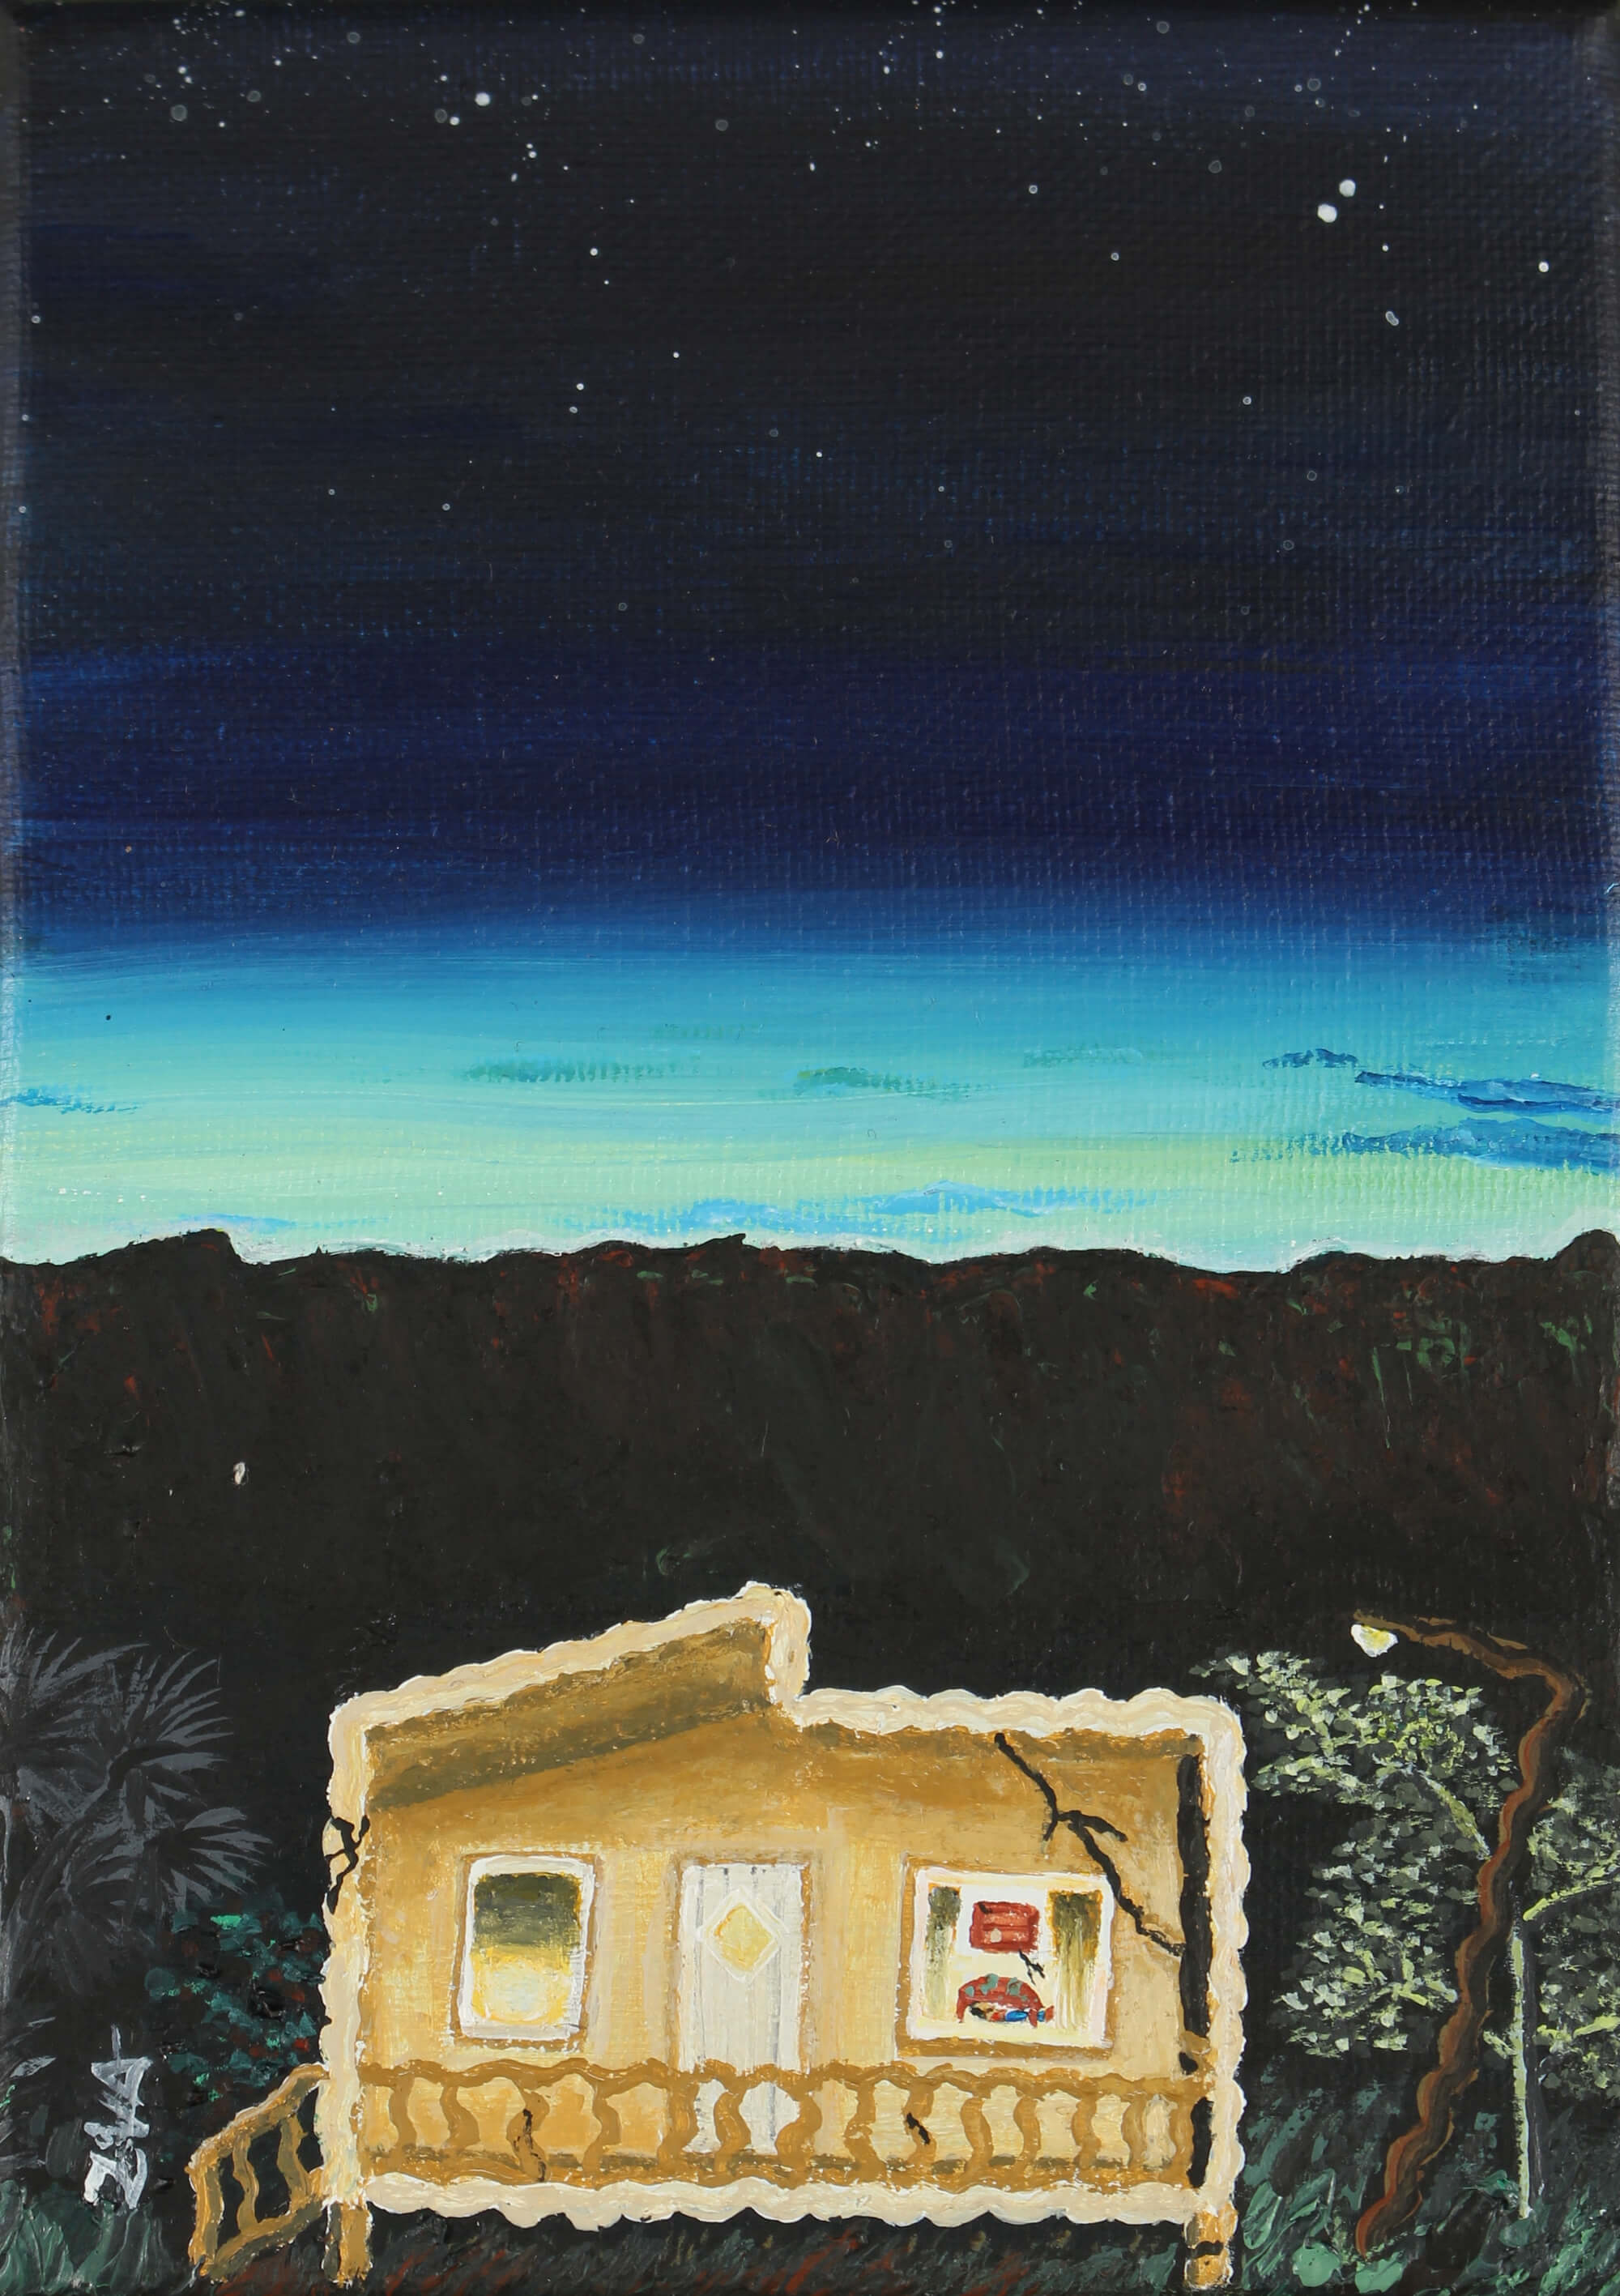 Acrylic painting of a concrete country house cracked by an earthquake at dawn by Zulmarie Vélez Acevedo